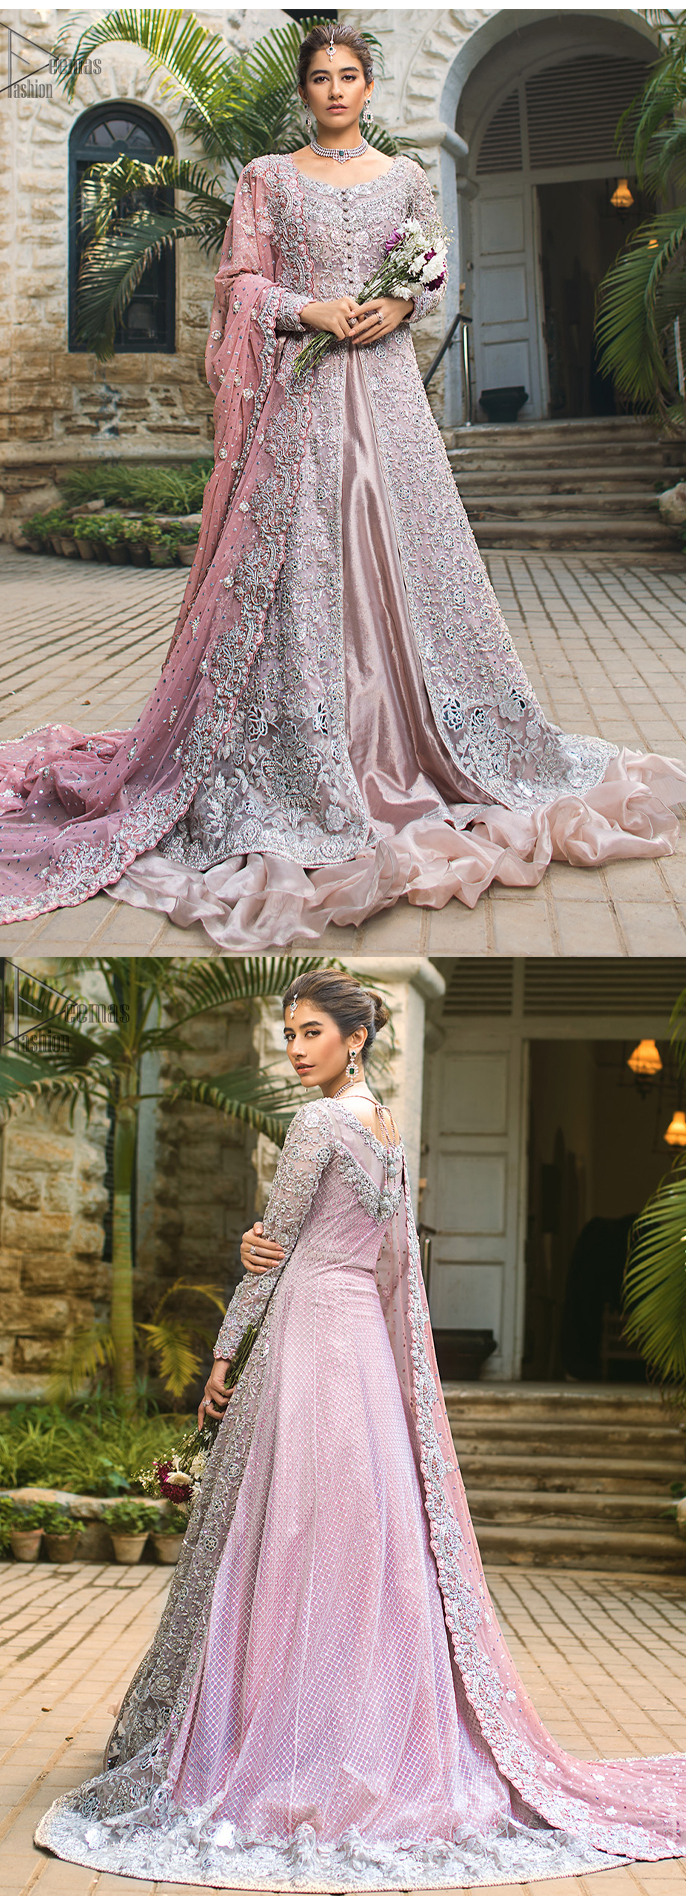 Pink Front Open Gown - Ruffled Sharara, Pair it up with a pink inner maxi and ruffled sharara gives the perfect ending to the outfit. The dupatta incorporates beautifully designed borders on all four sides, focusing on the heavily embellished pallu borders to give it a perfect maharani look.